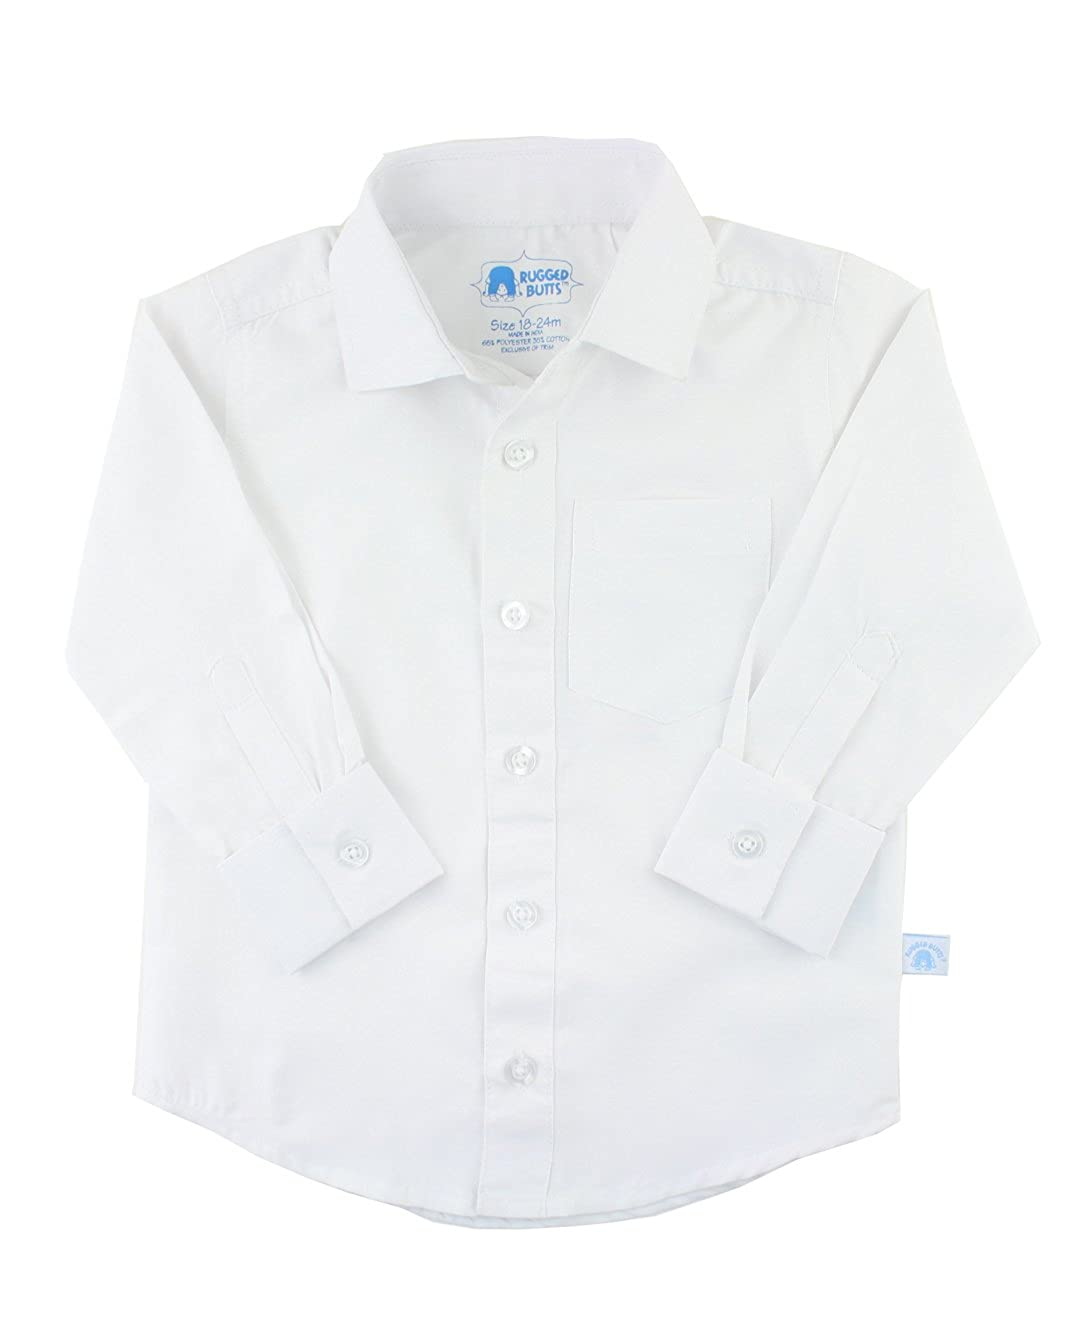 RuggedButts Baby/Toddler Boys White Formal Button Down BLWWHXX-FC00-BABY